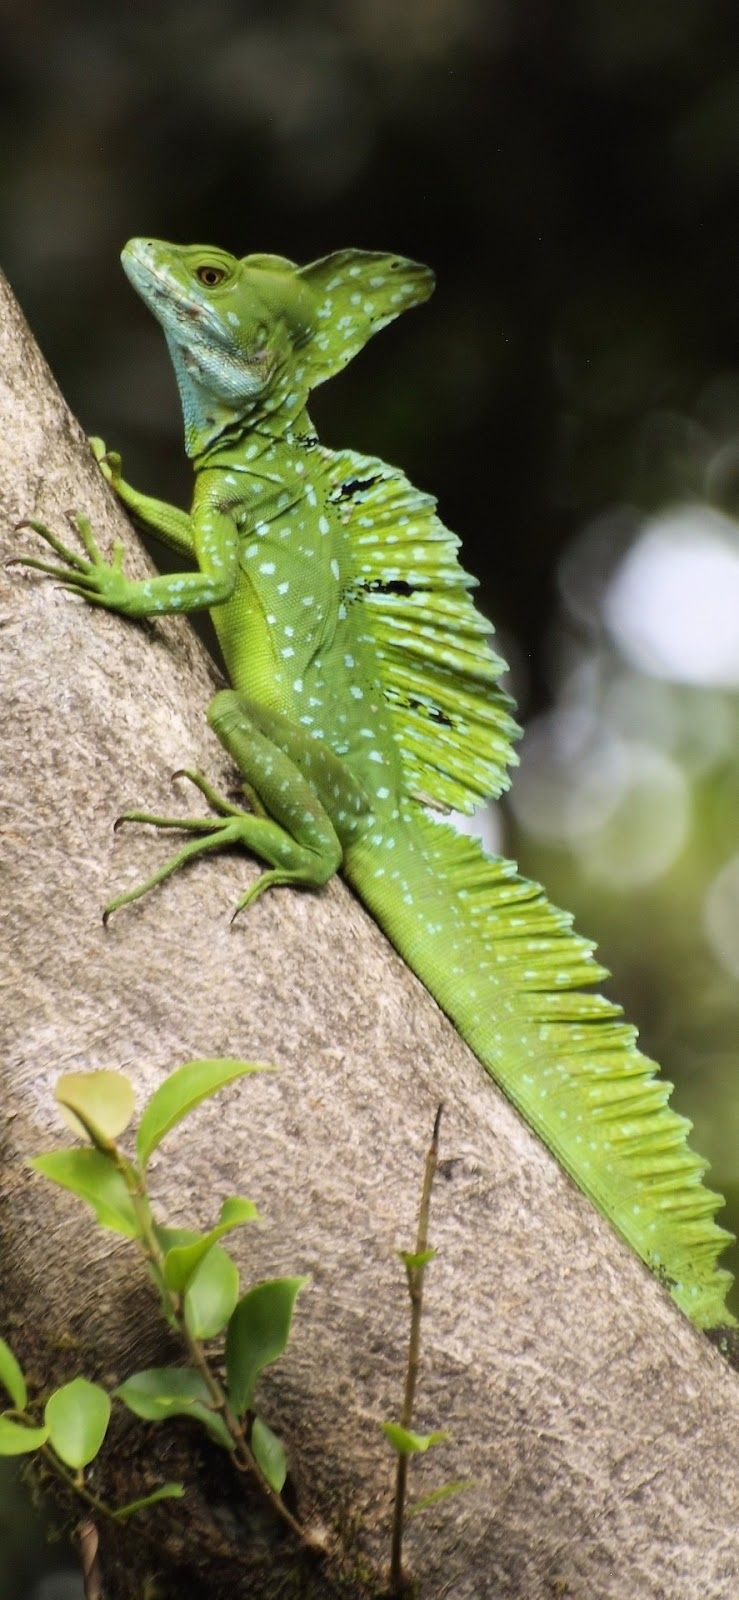 Weird looking green lizard (Basiliscus plumifrons)